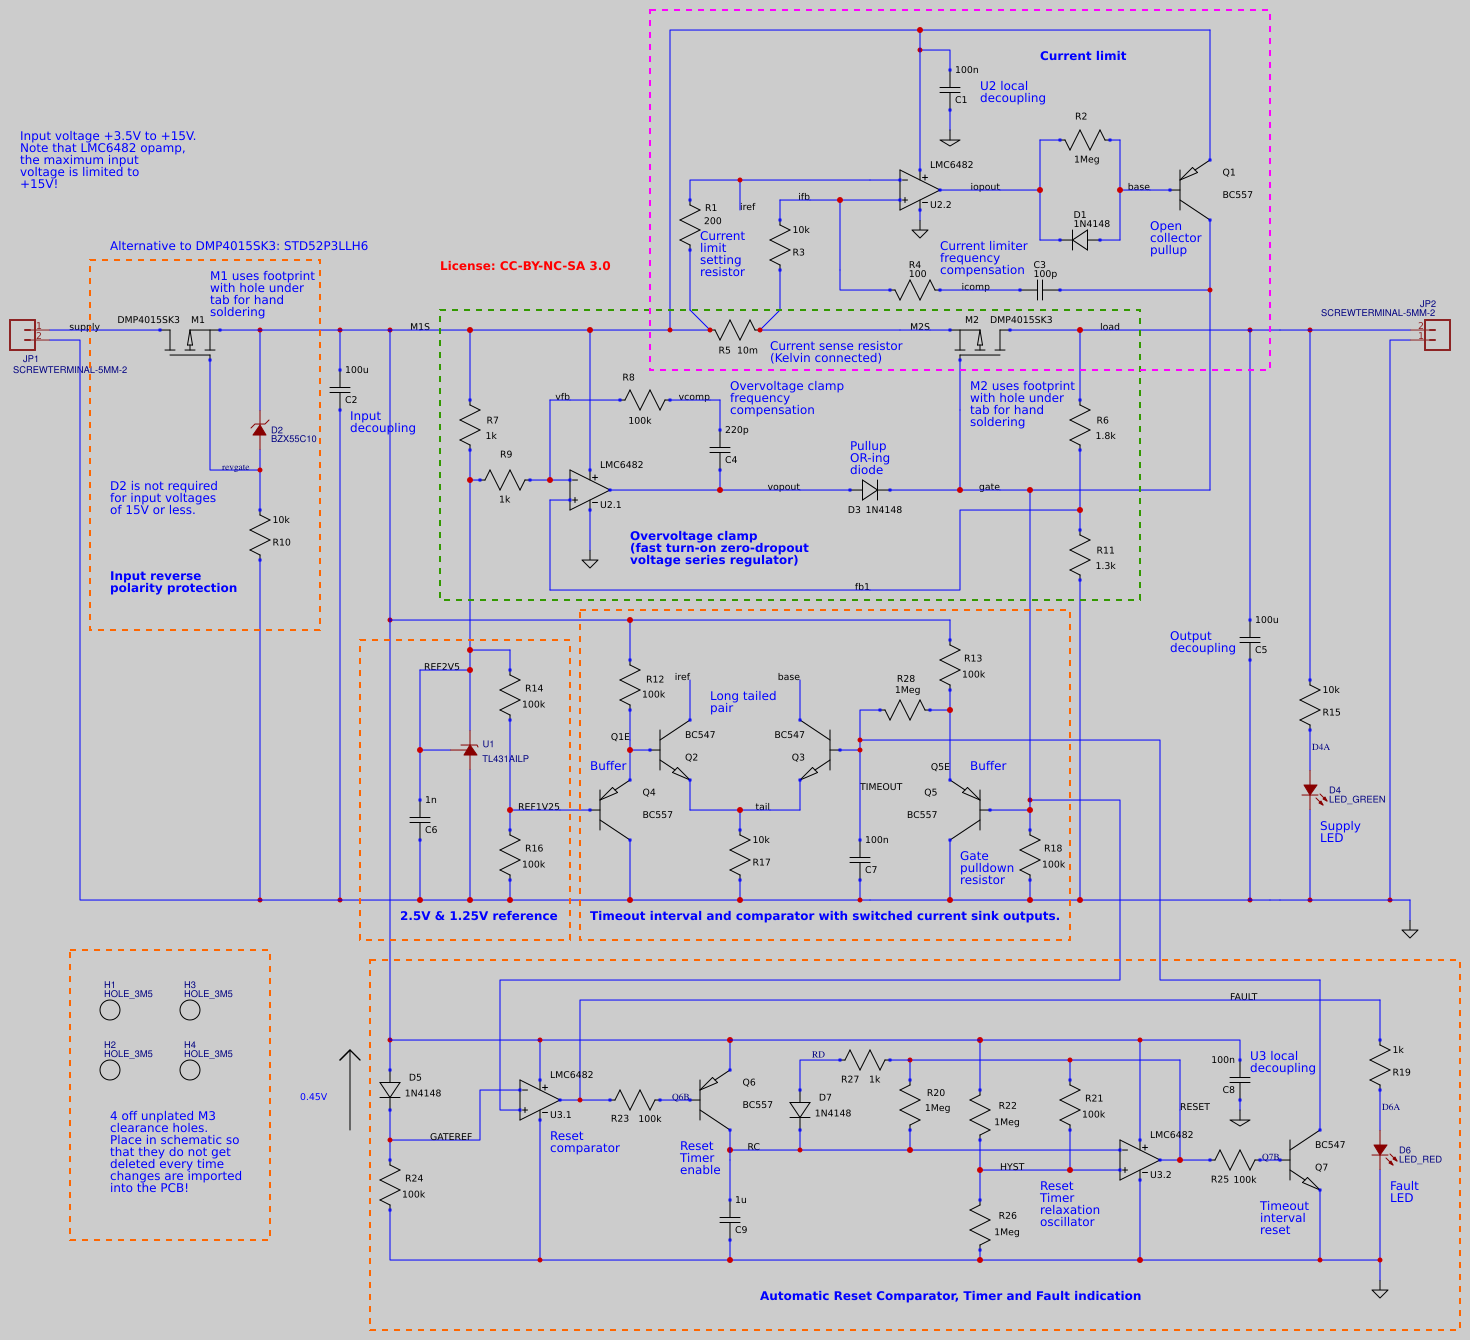 Uberclamp Schematic PCB and BoM